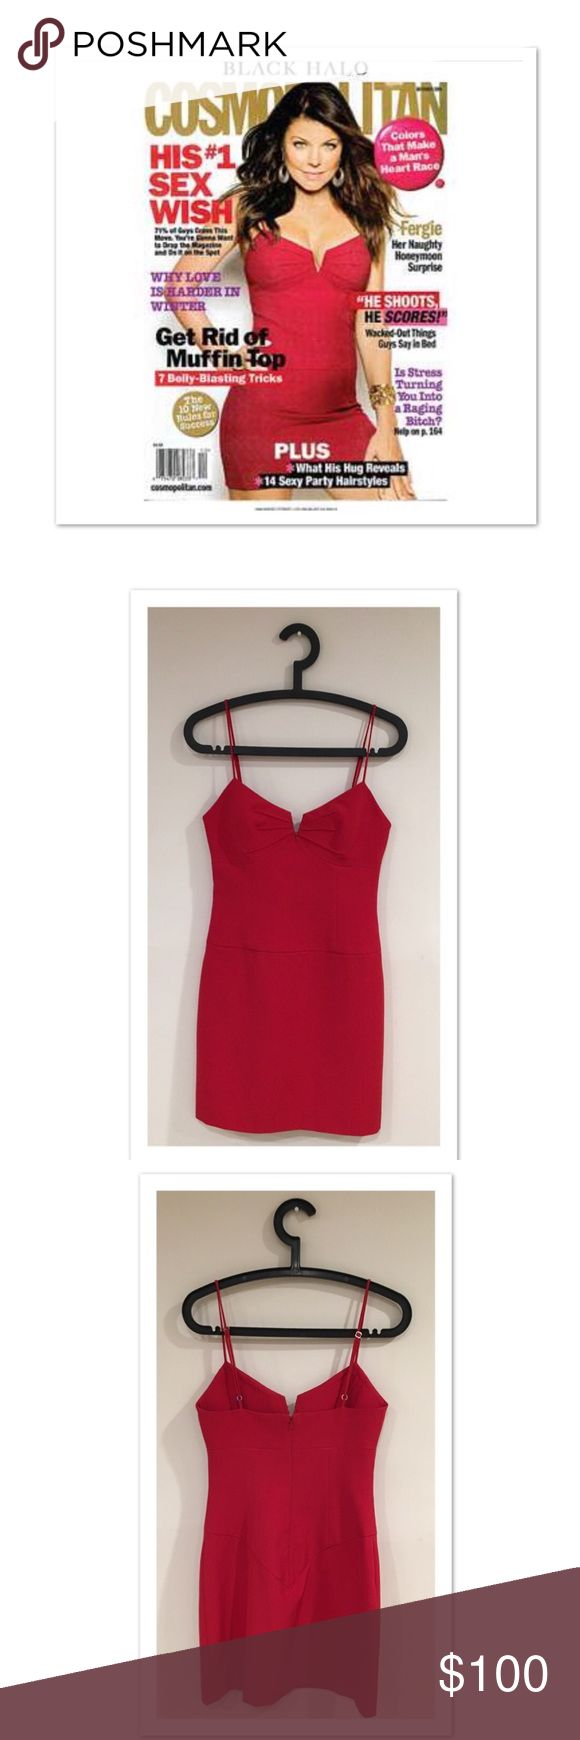 Black Halo Red Mini Dress -Worn by Fergie in Cosmo STUNNING red dress by Black Halō, a celebrity favorite! Adjustable spaghetti straps. BNWT. NO FLAWS! PERFECT date night or girls night dress!! 🍹 Cocktails anyone?!?😁 Black Halo Dresses Mini